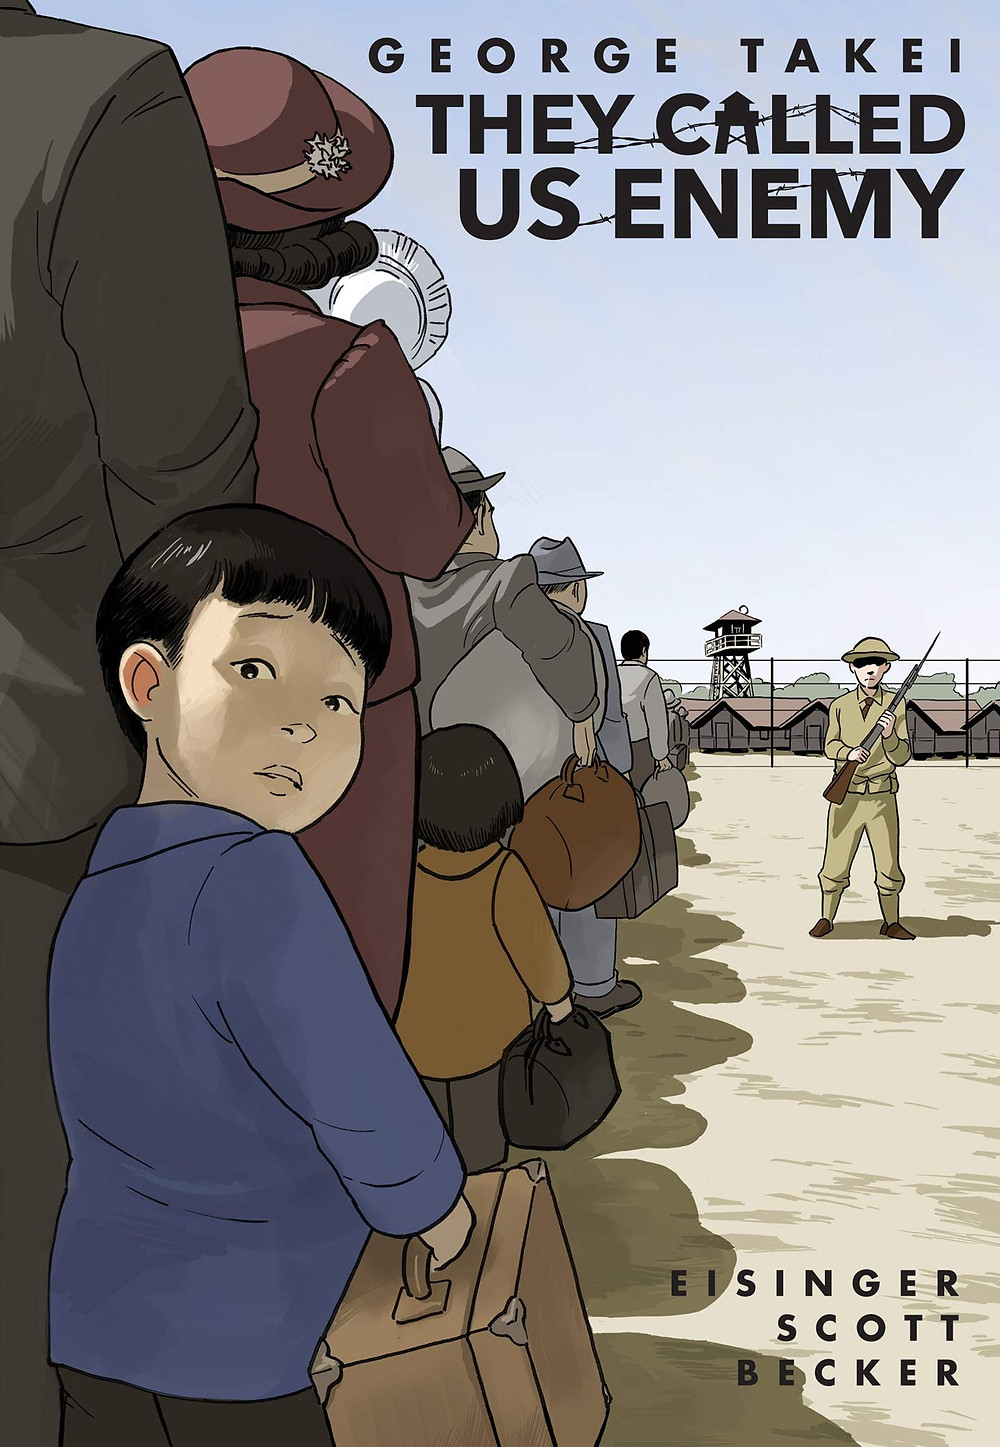 A line of Japanese-Americans file into an internment camp while a soldier watches them. A young boy turns to look at the audience.